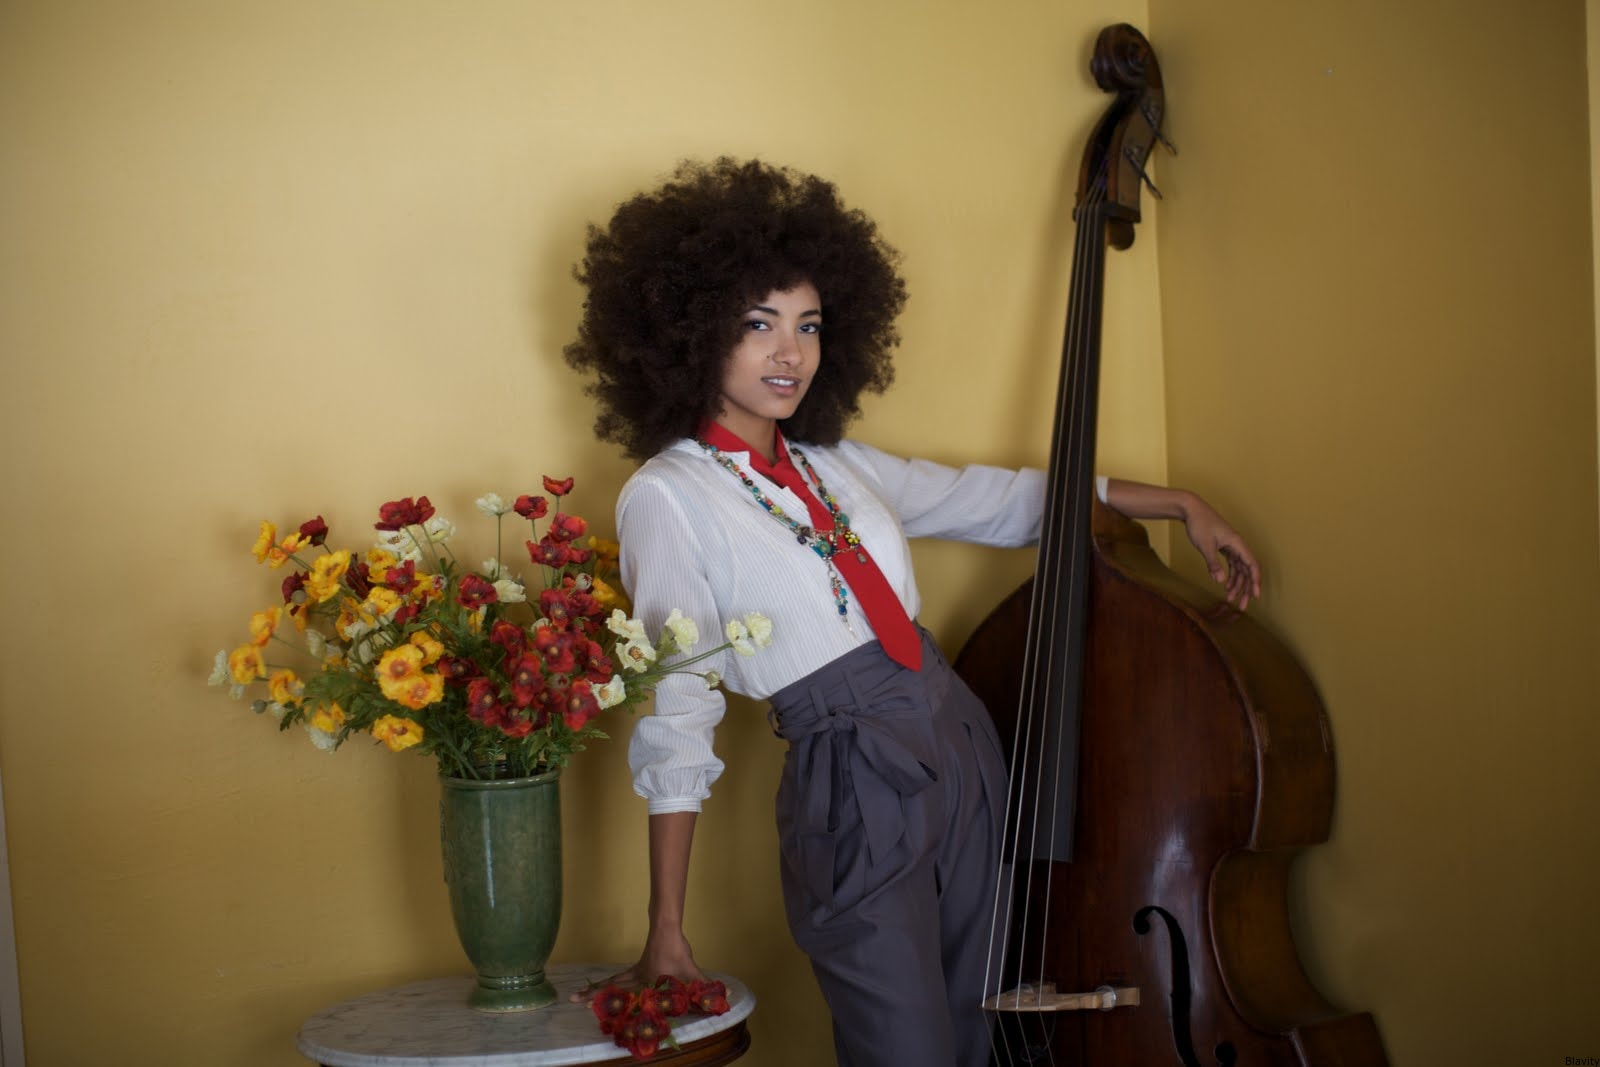 Grammy Award Winner Esperanza Spalding Joins Harvard's Department of Music as a Professor